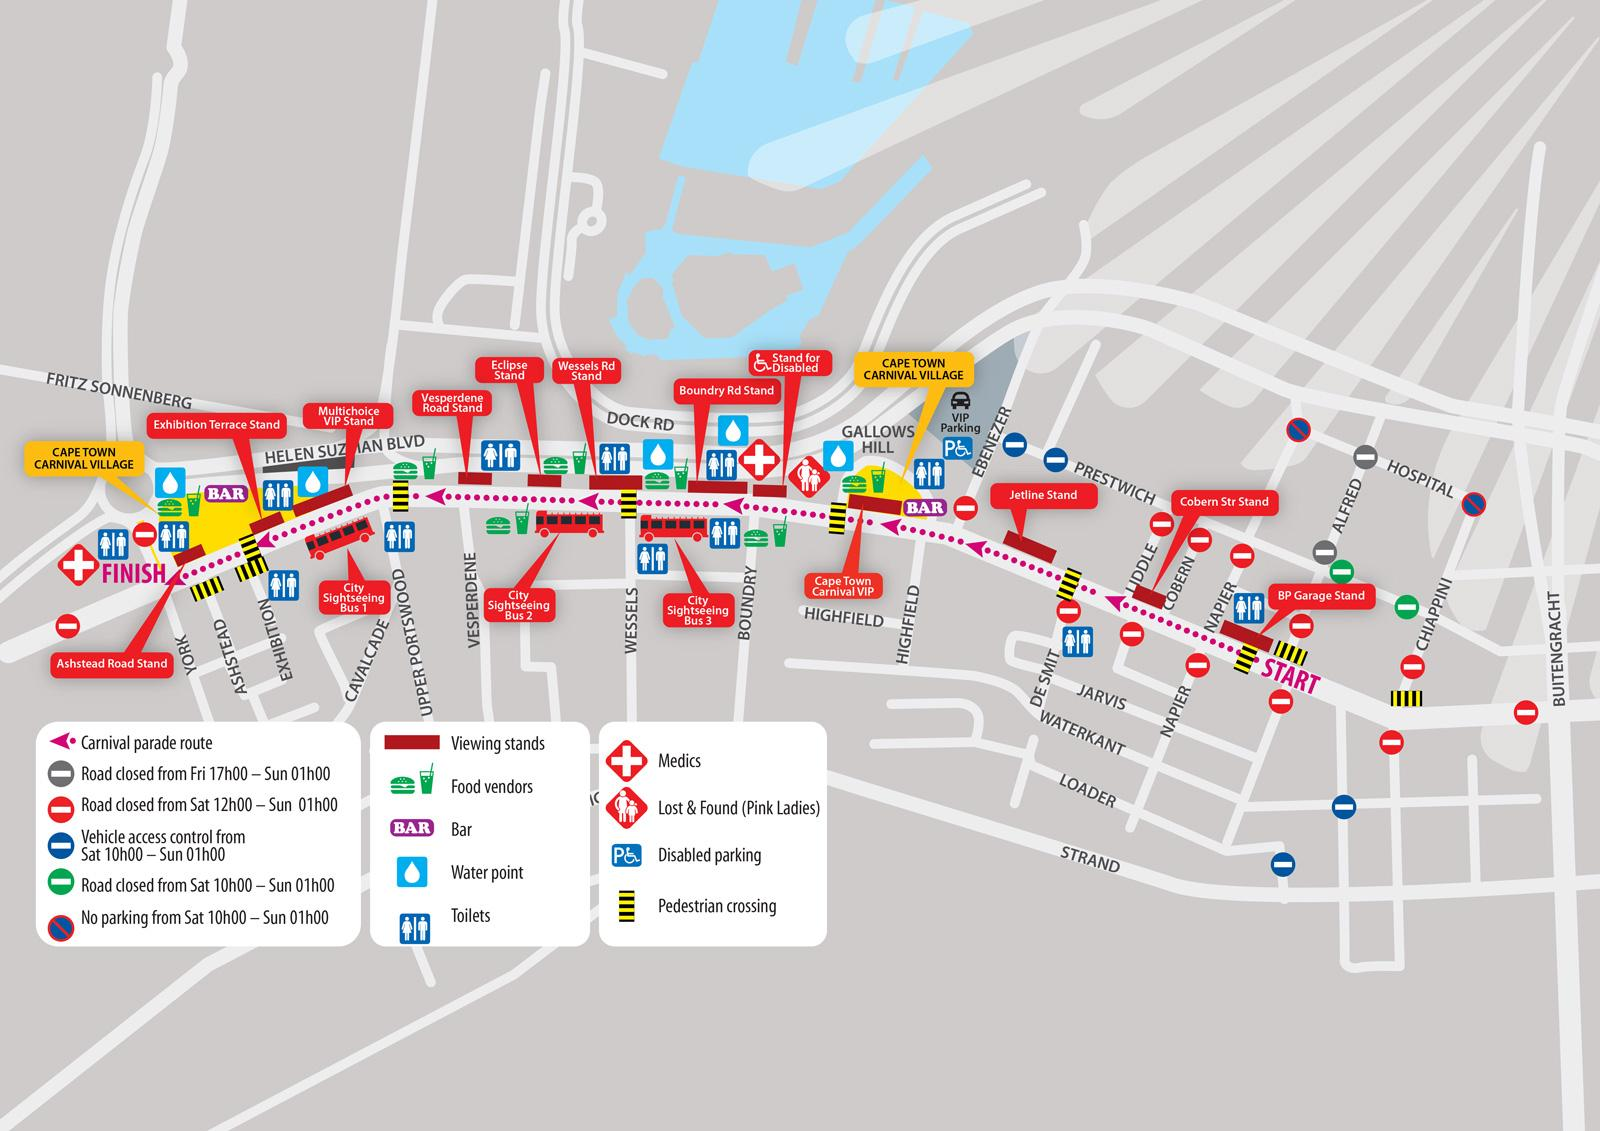 Cape Town Carnival Event Map 2018